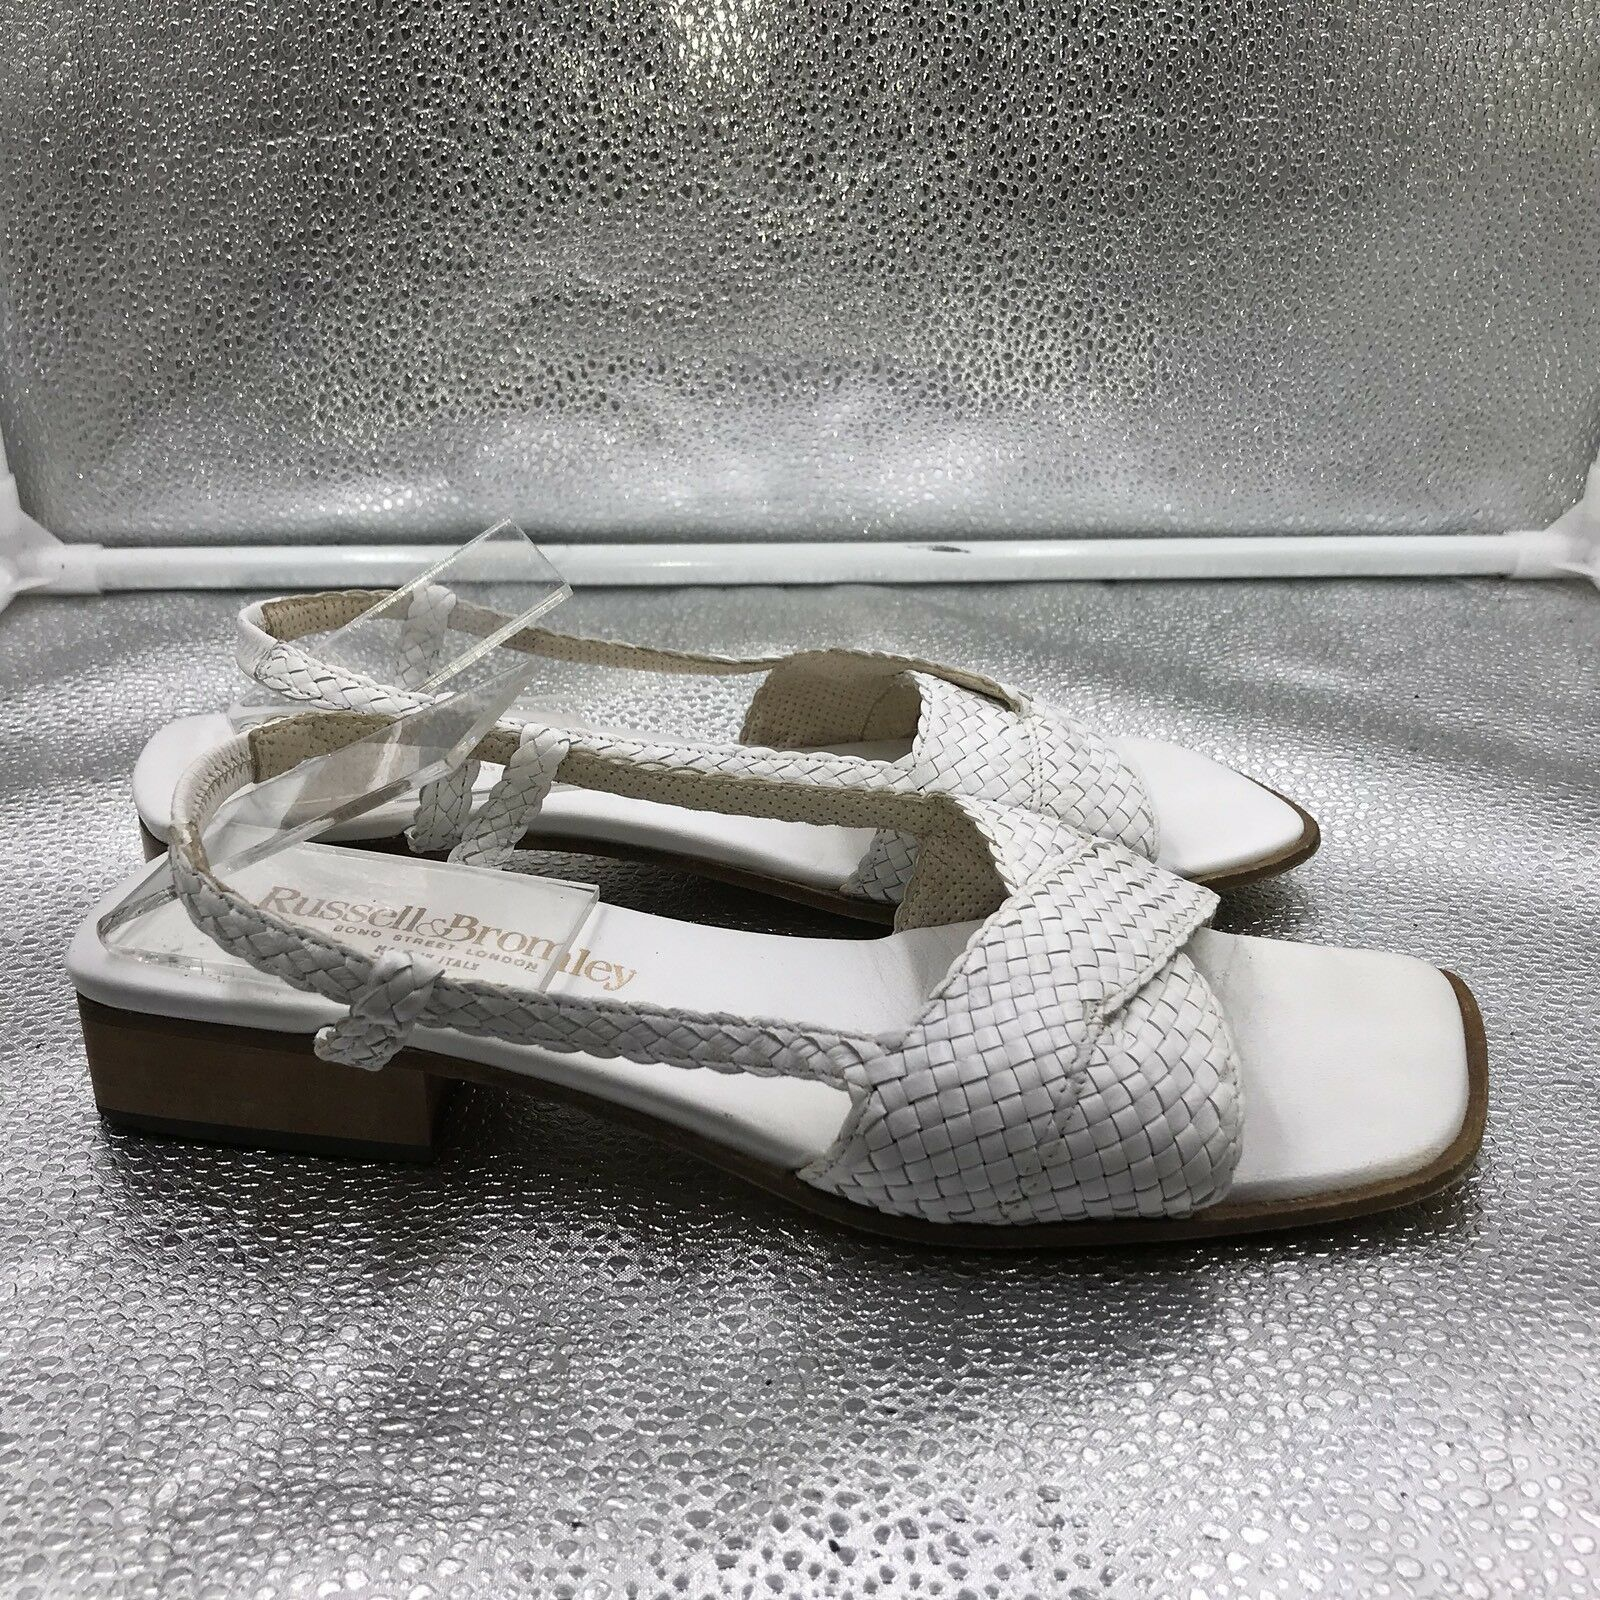 Russell Bromley & Bromley Russell Damenschuhe Sz 6.5 39.5 Weiß Woven Leder Sandales Vintage Style ba025e